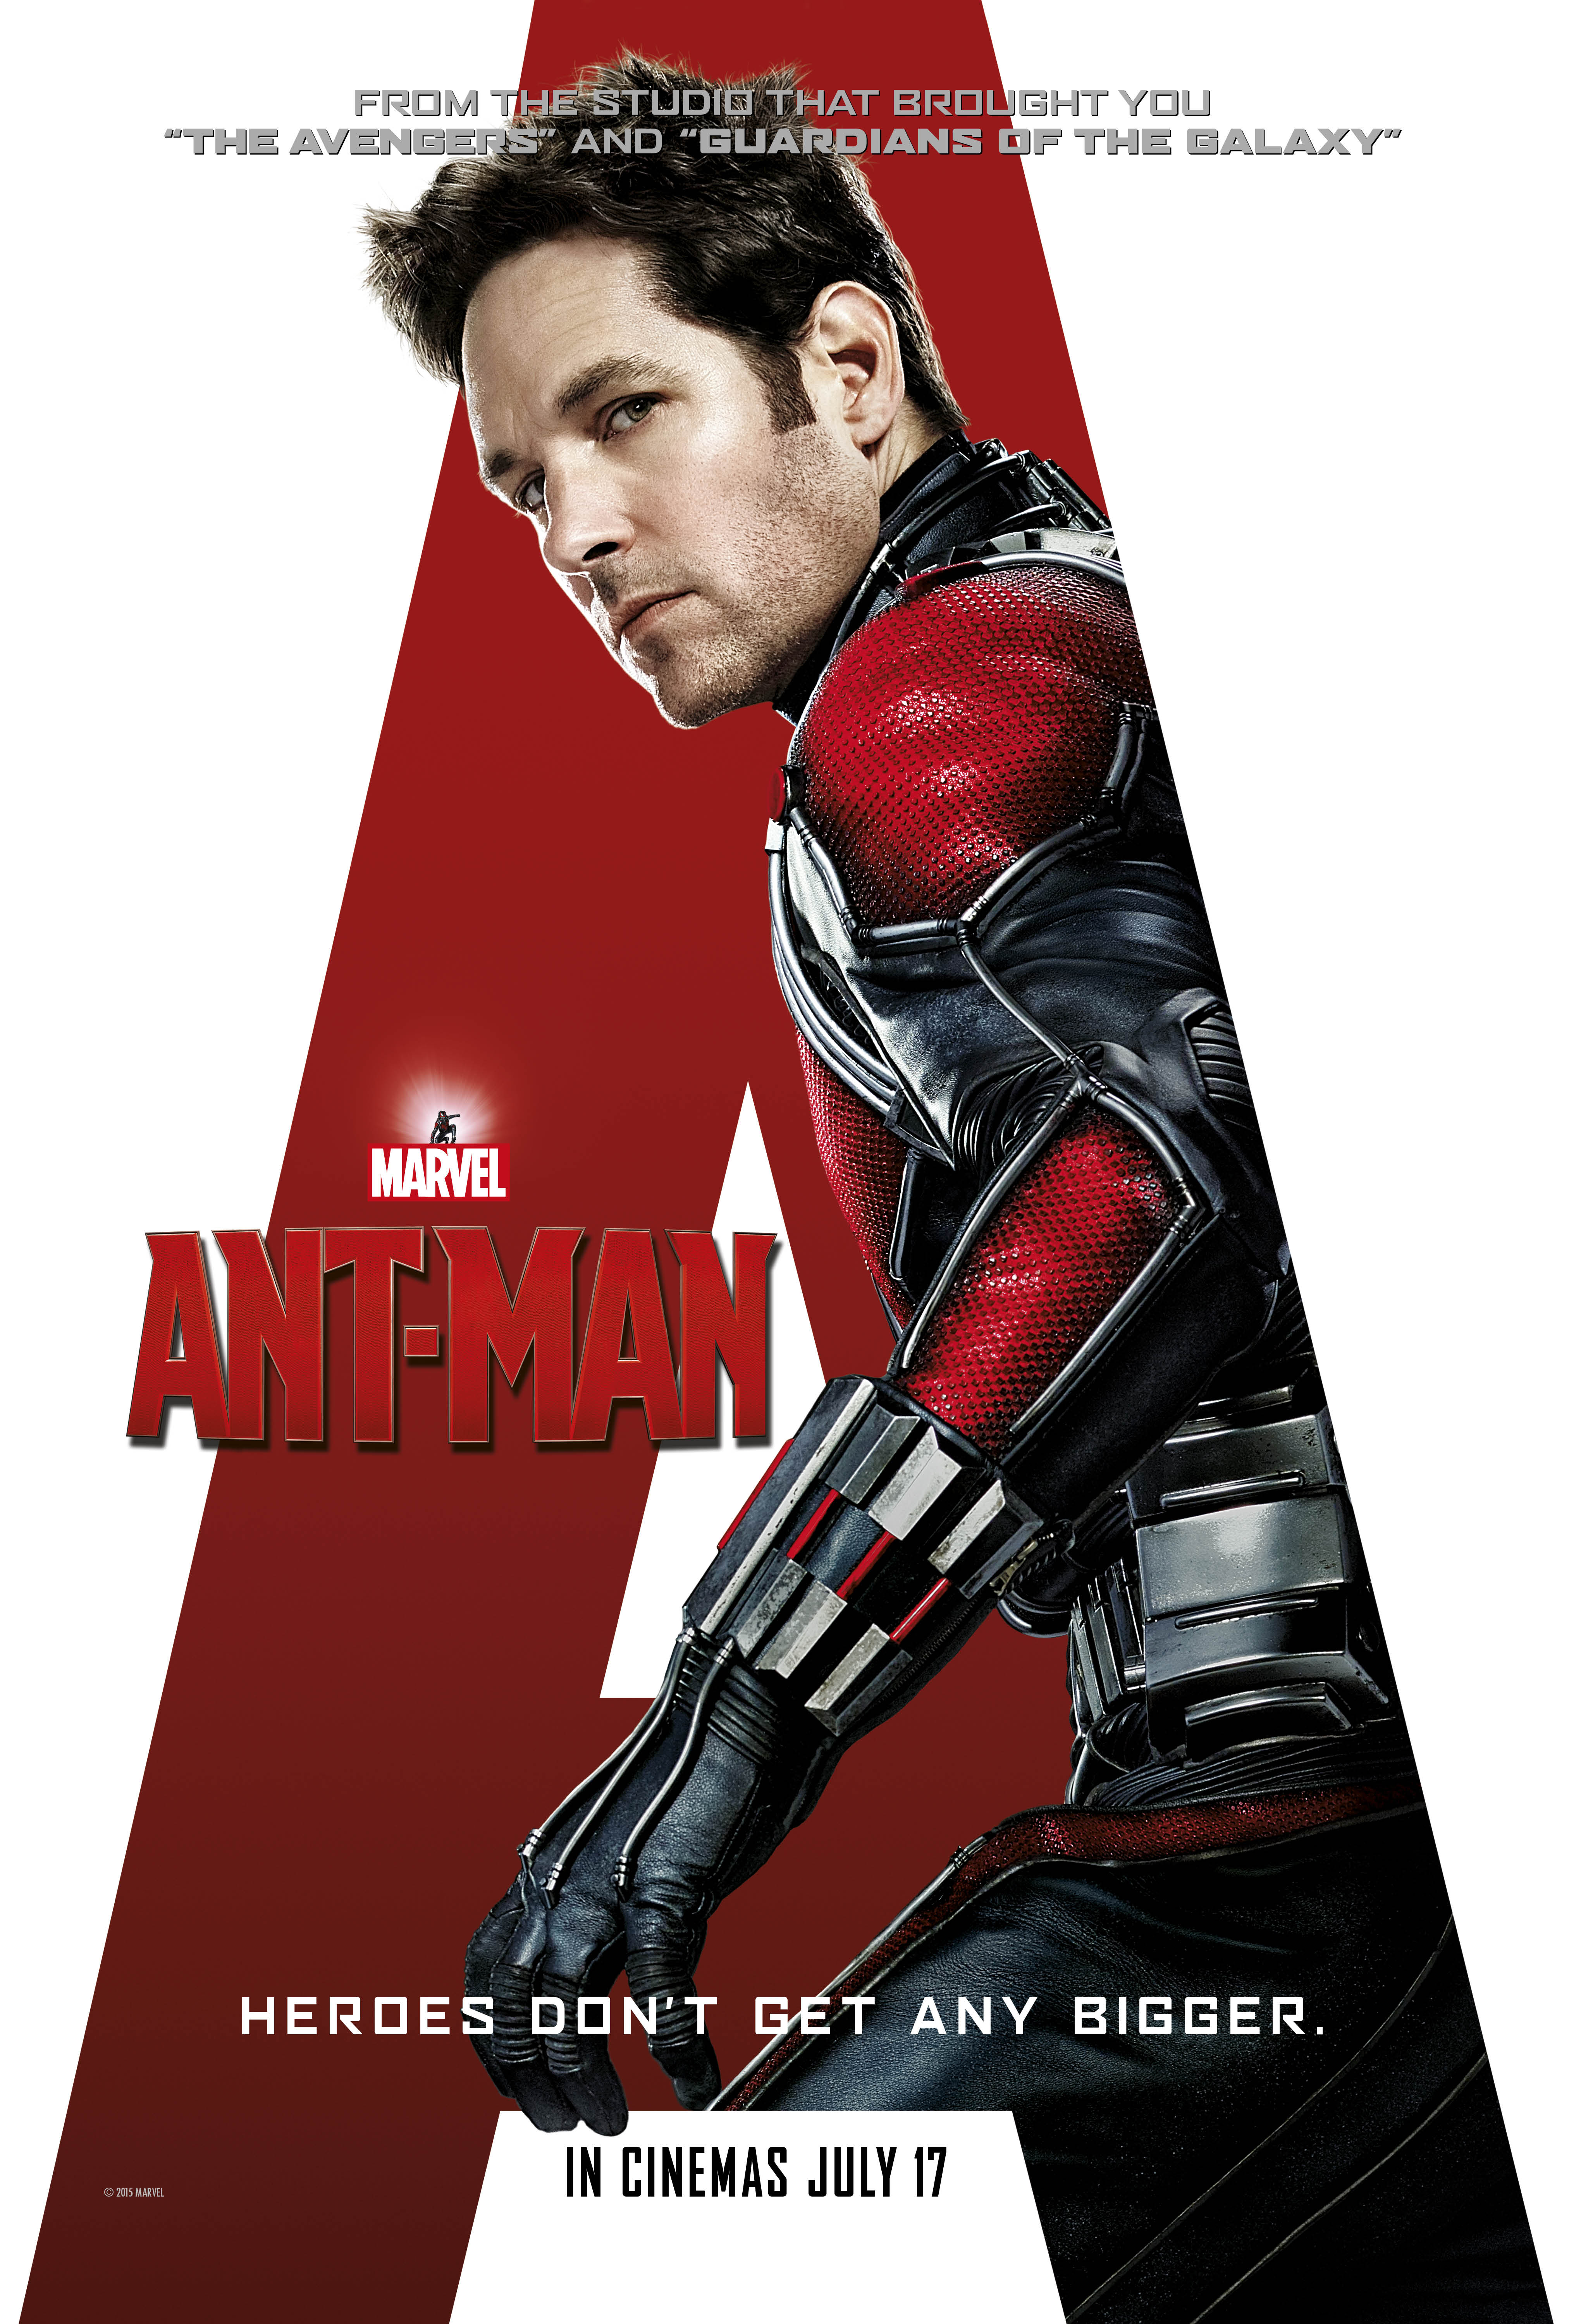 Ant-Man theatrical poster